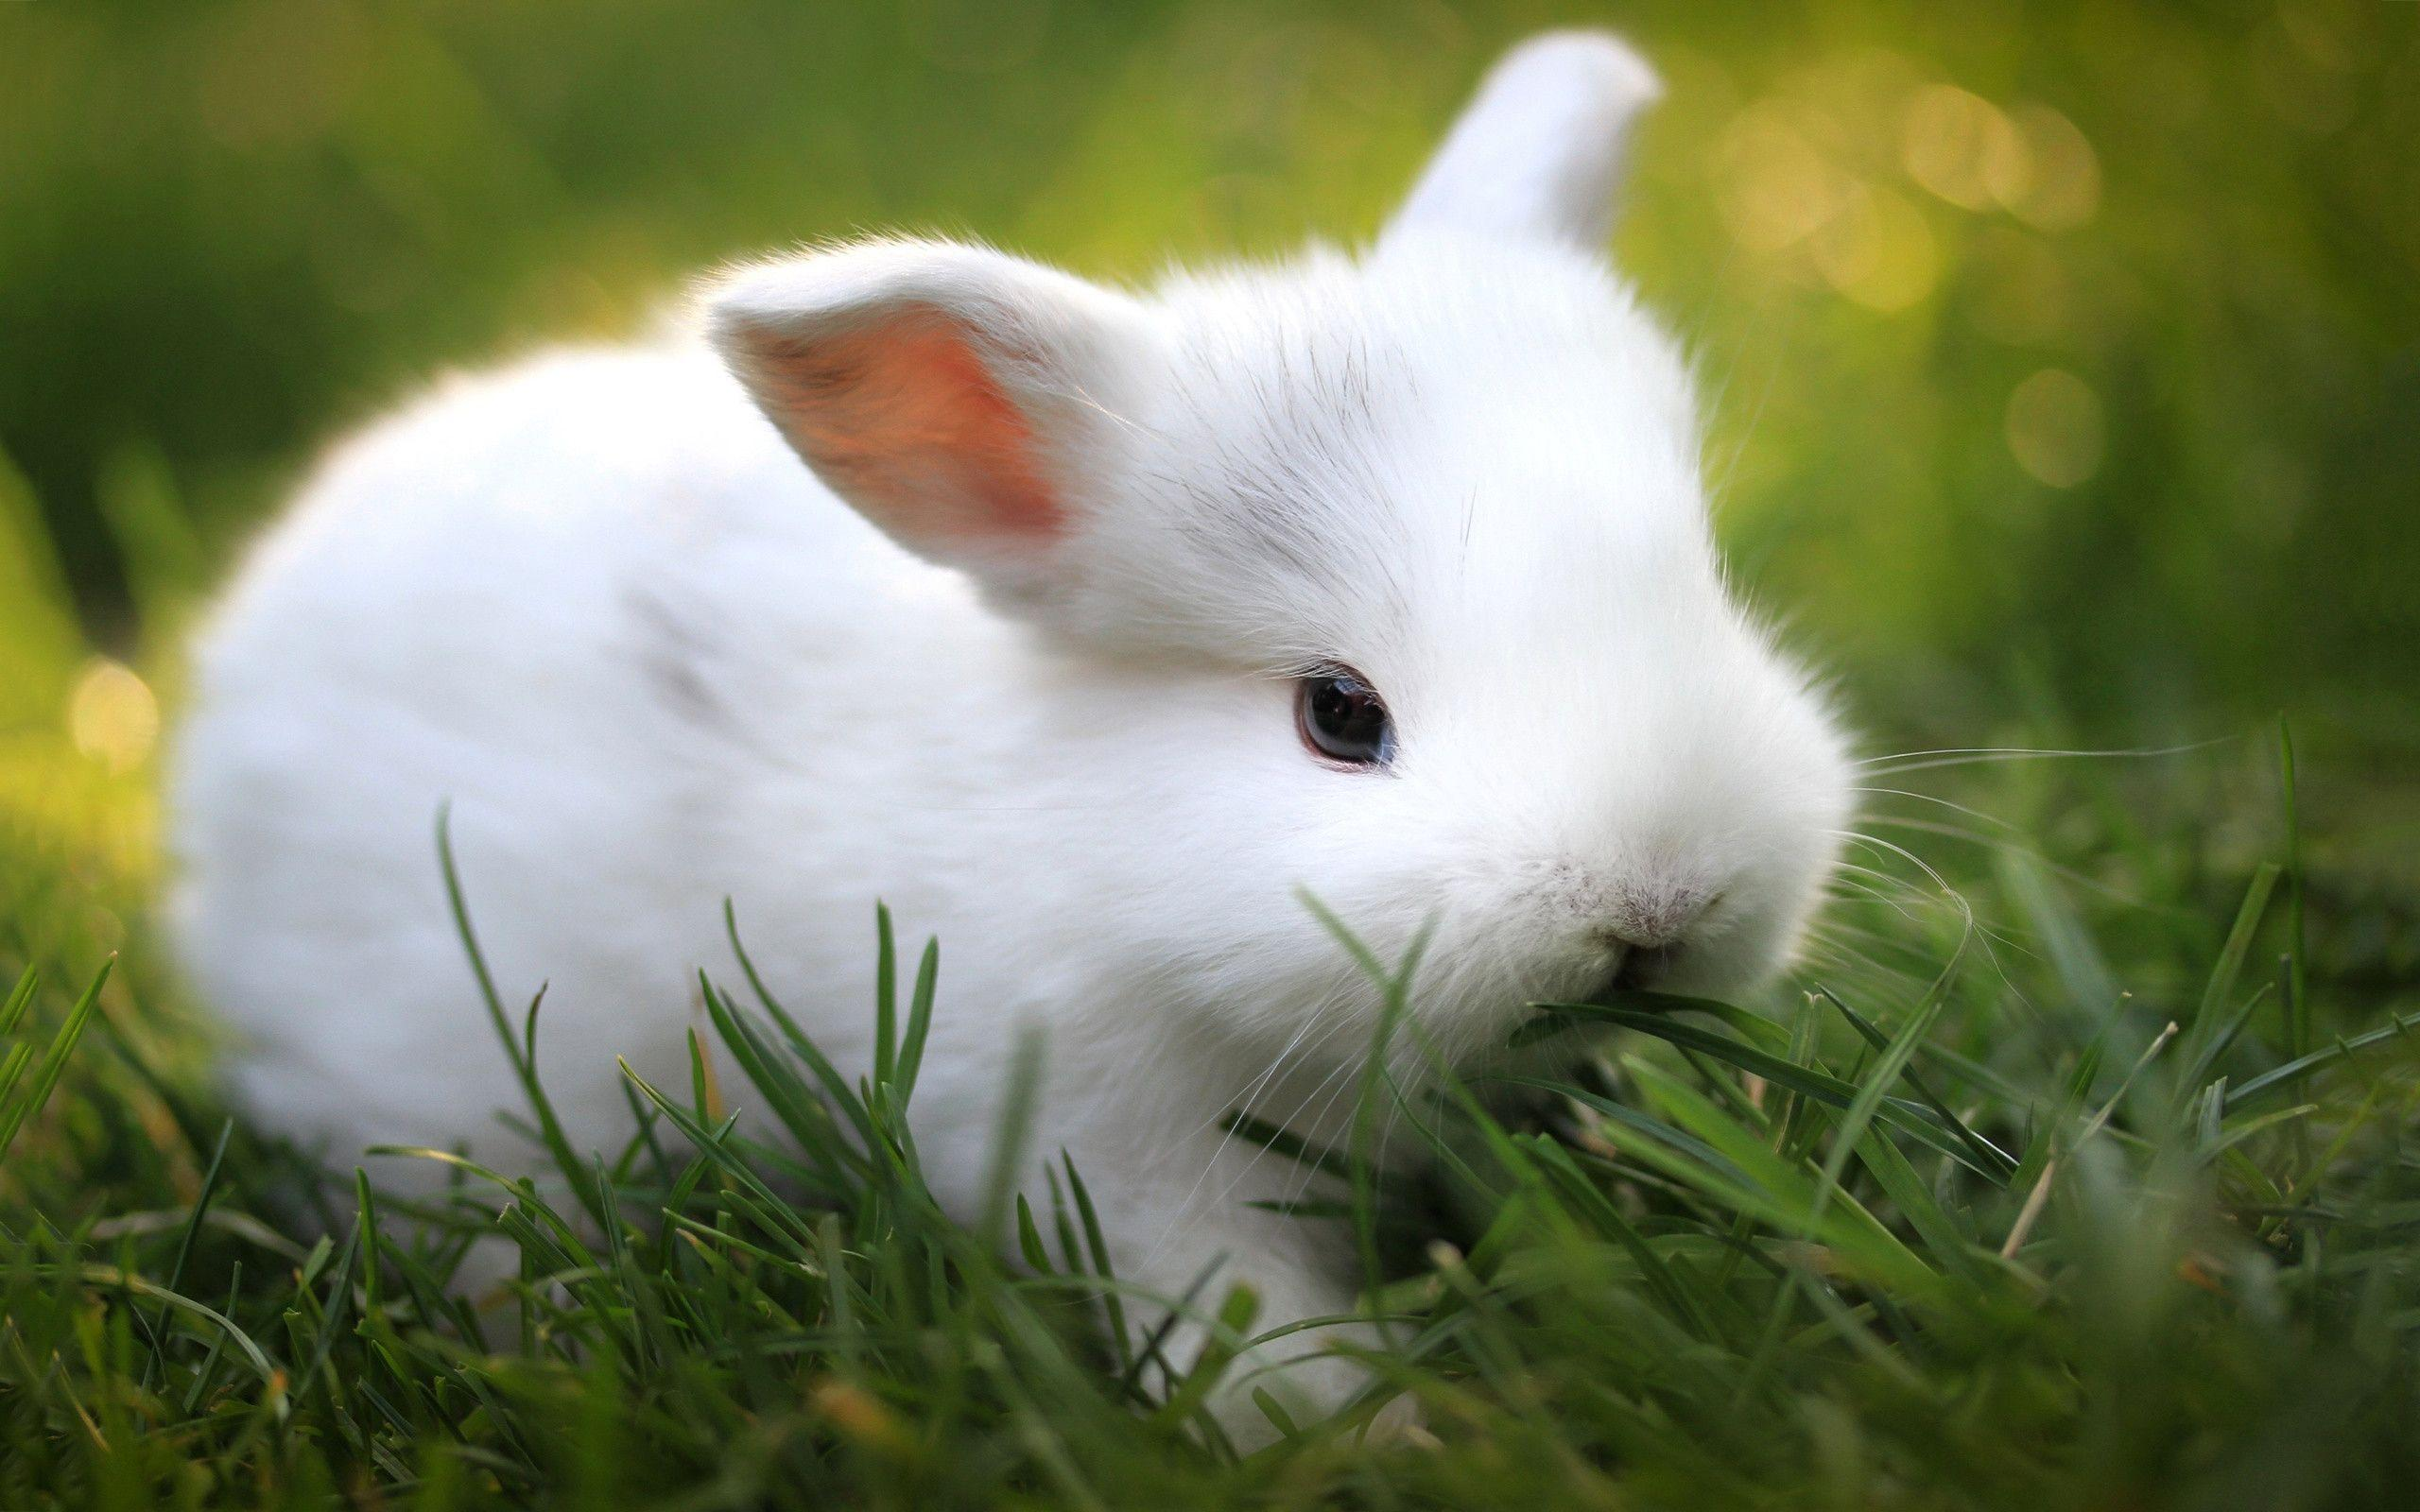 Cute White Bunny Wallpaper 39765 In Animals